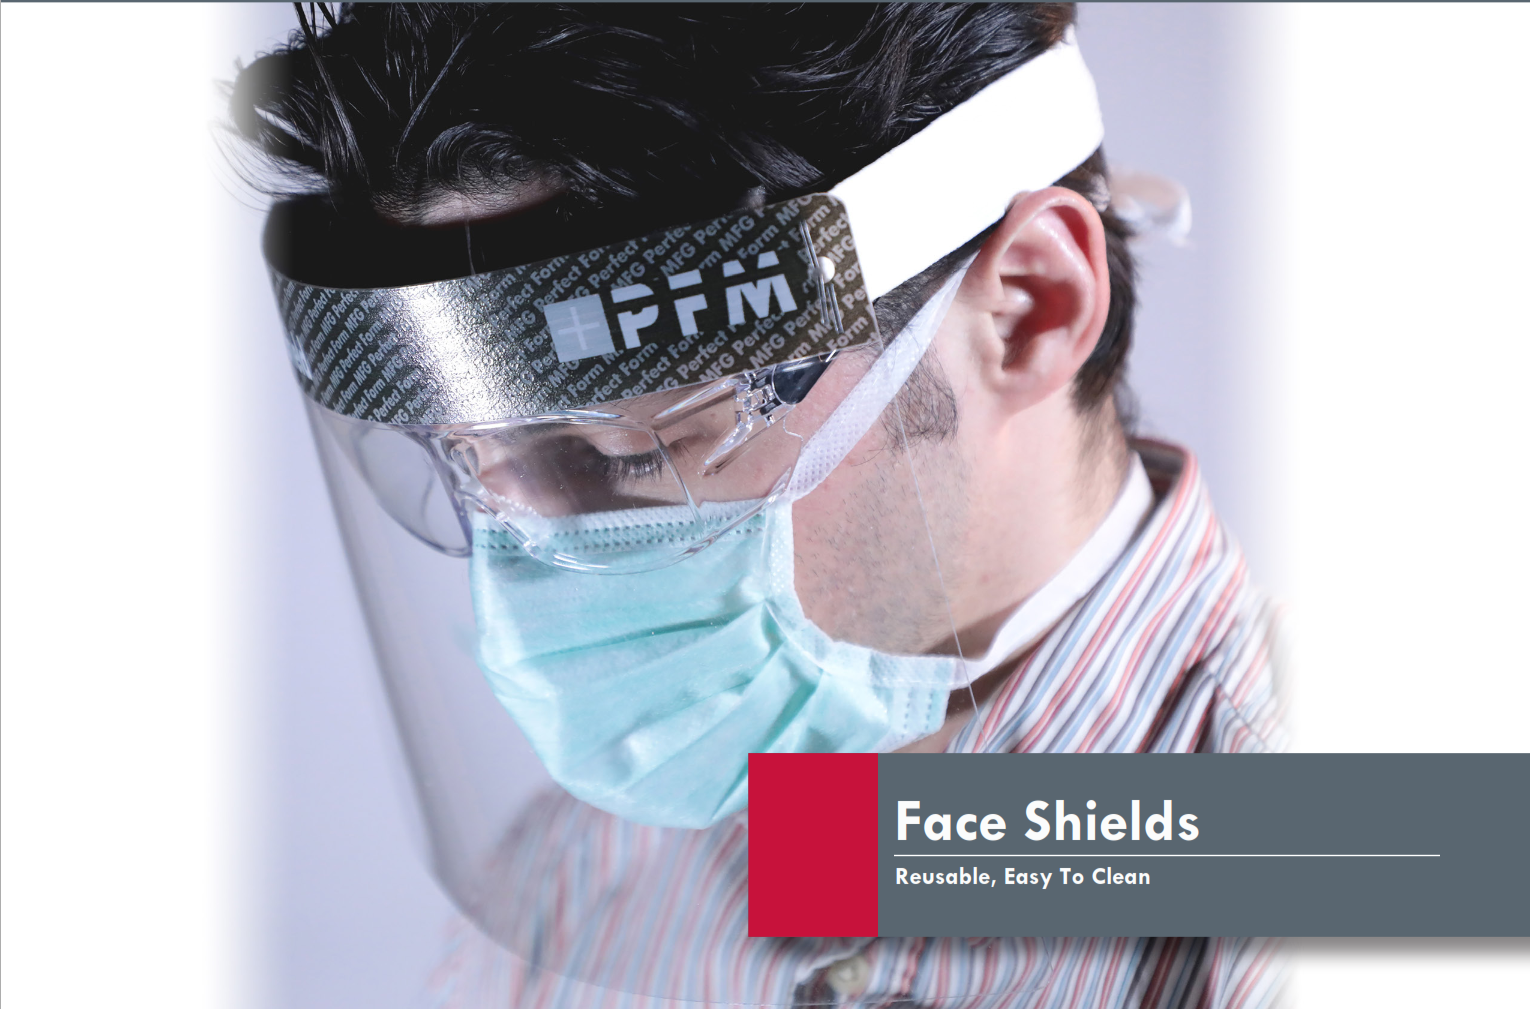 Thin-Gauge, Clear Polycarbonate Face Shields (5 per pack)